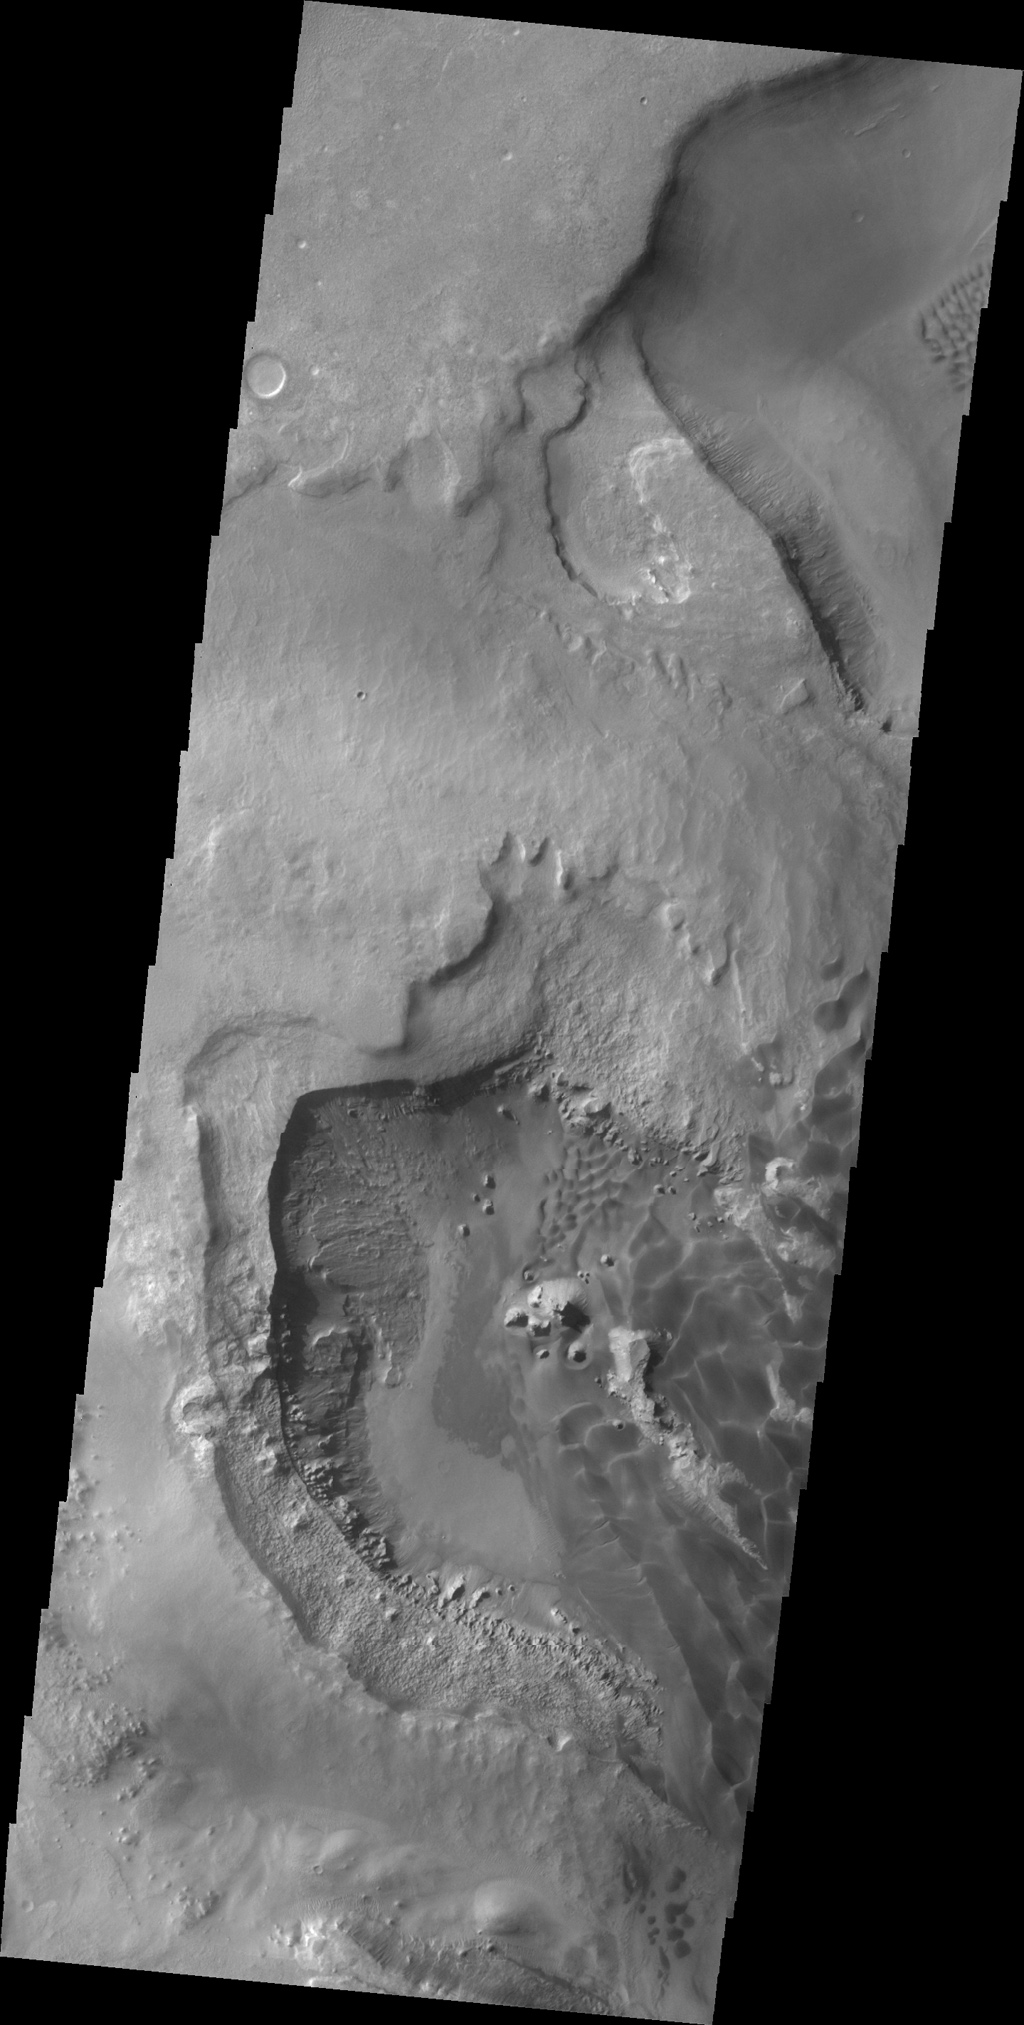 This image shows a portion of the dunes on the floor of Rabe Crater captured by NASA's 2001 Mars Odyssey spacecraft.